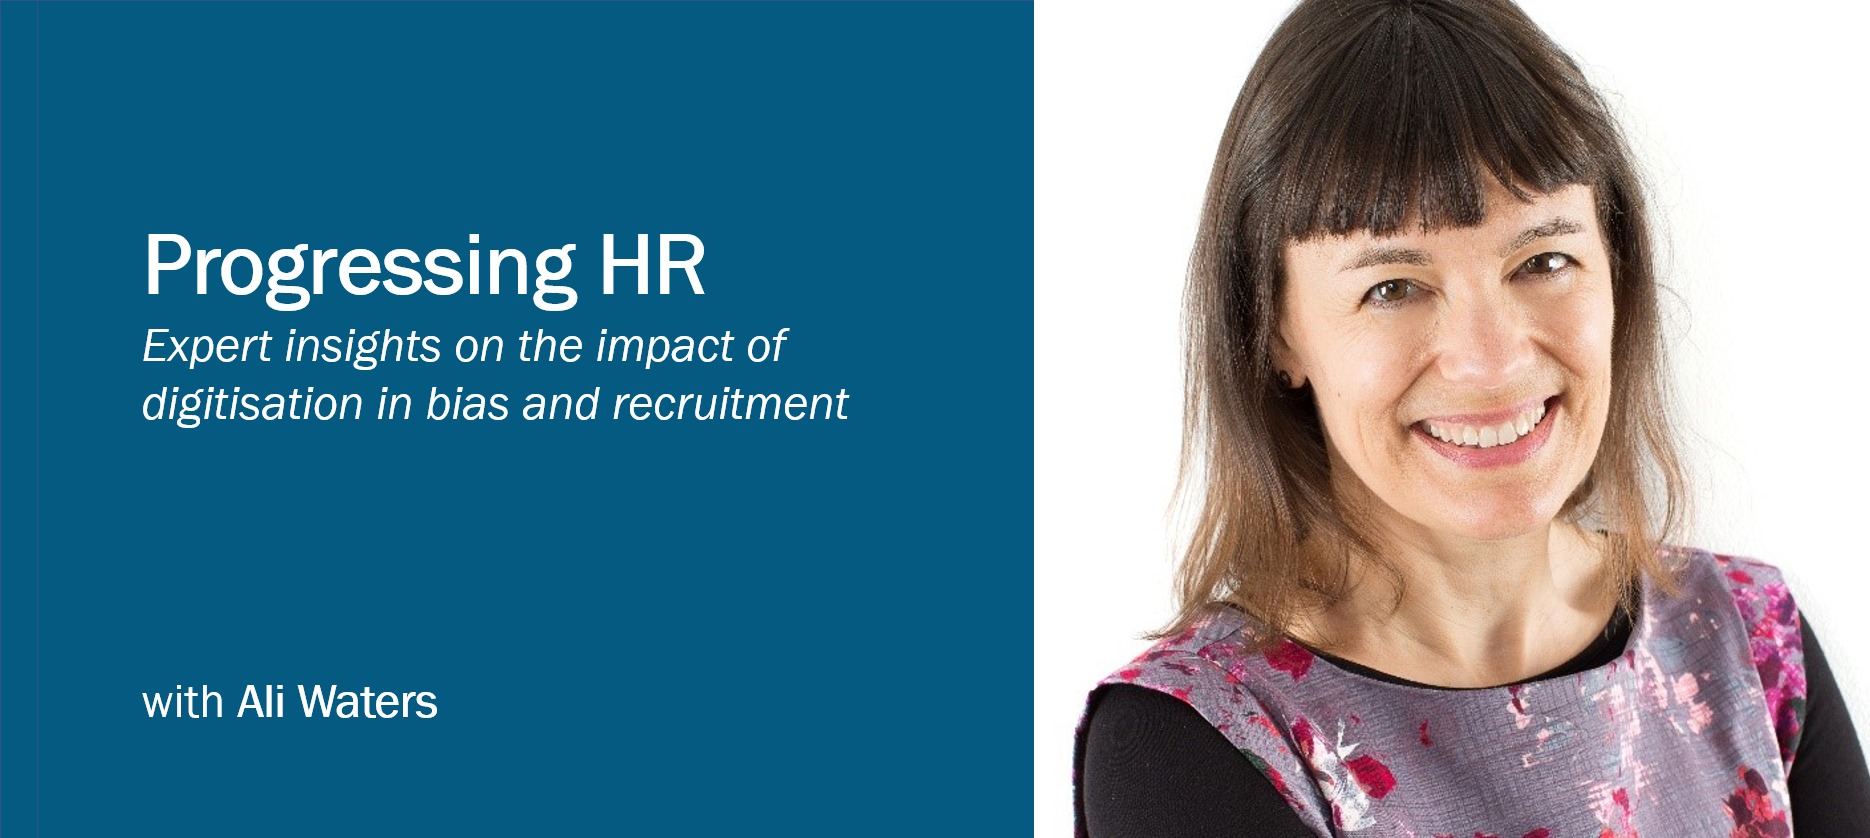 Progressing HR with Ali Waters